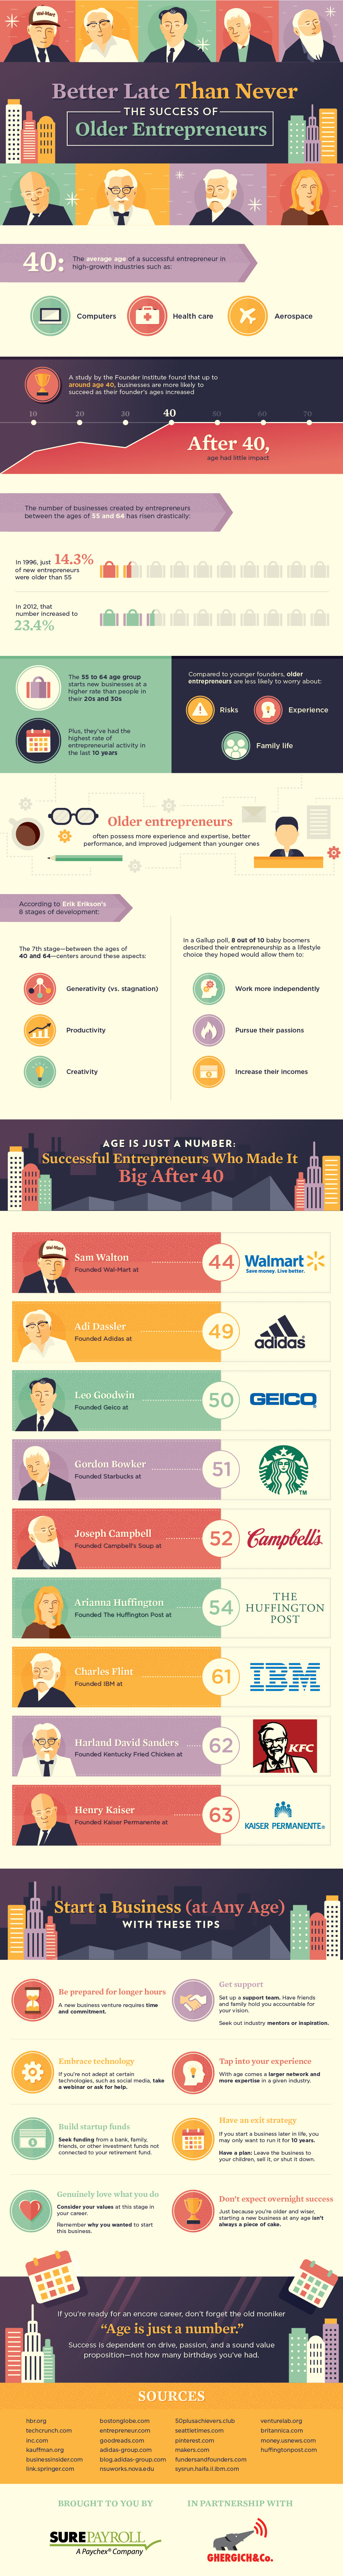 success-of-older-entrepreneurs-infographic